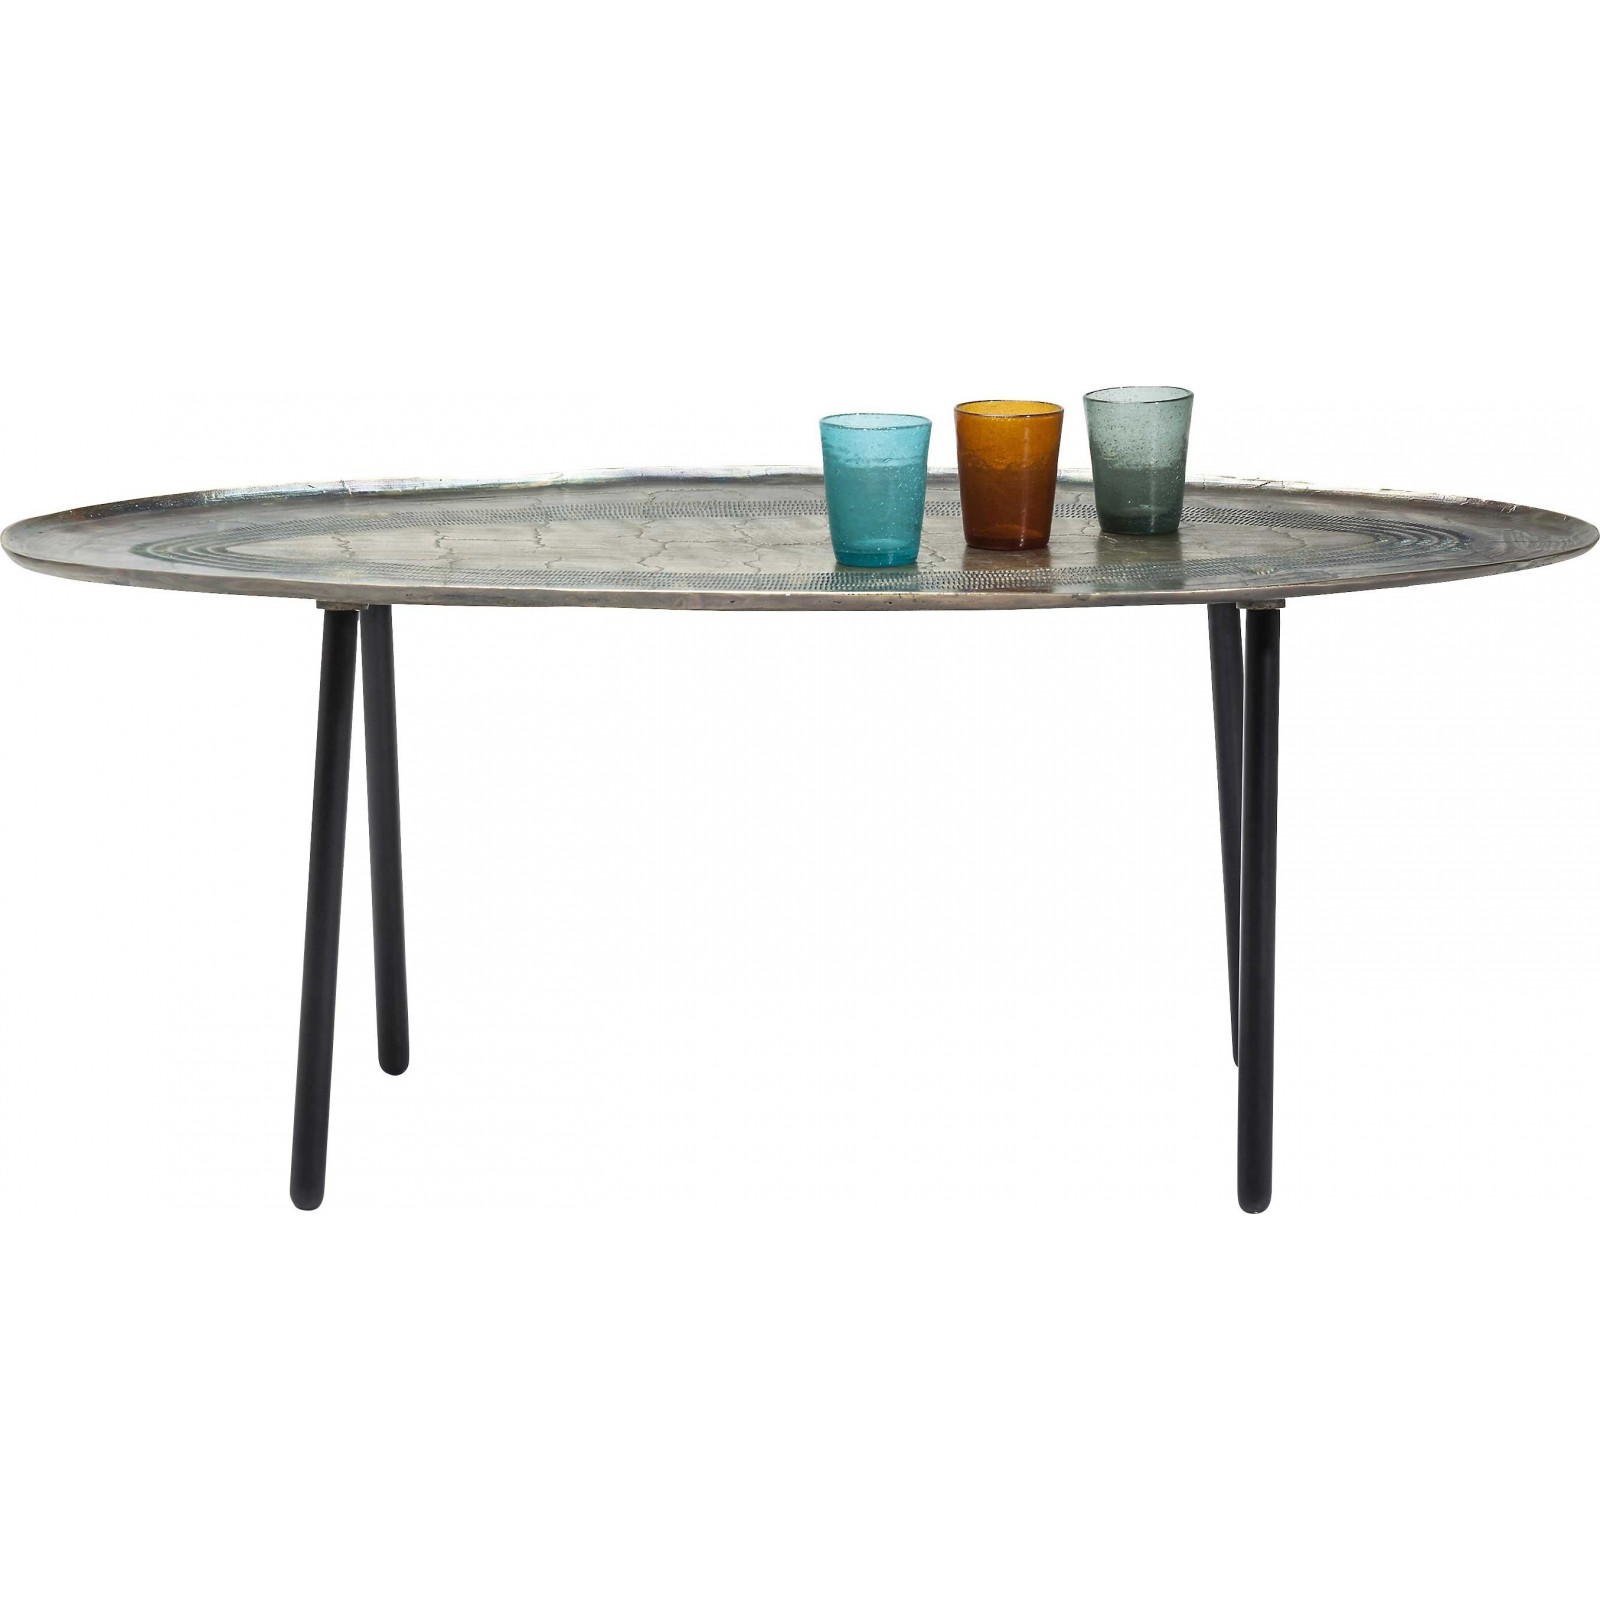 Table Ovale Design Table Basse Design Ovale Maison Design Wiblia